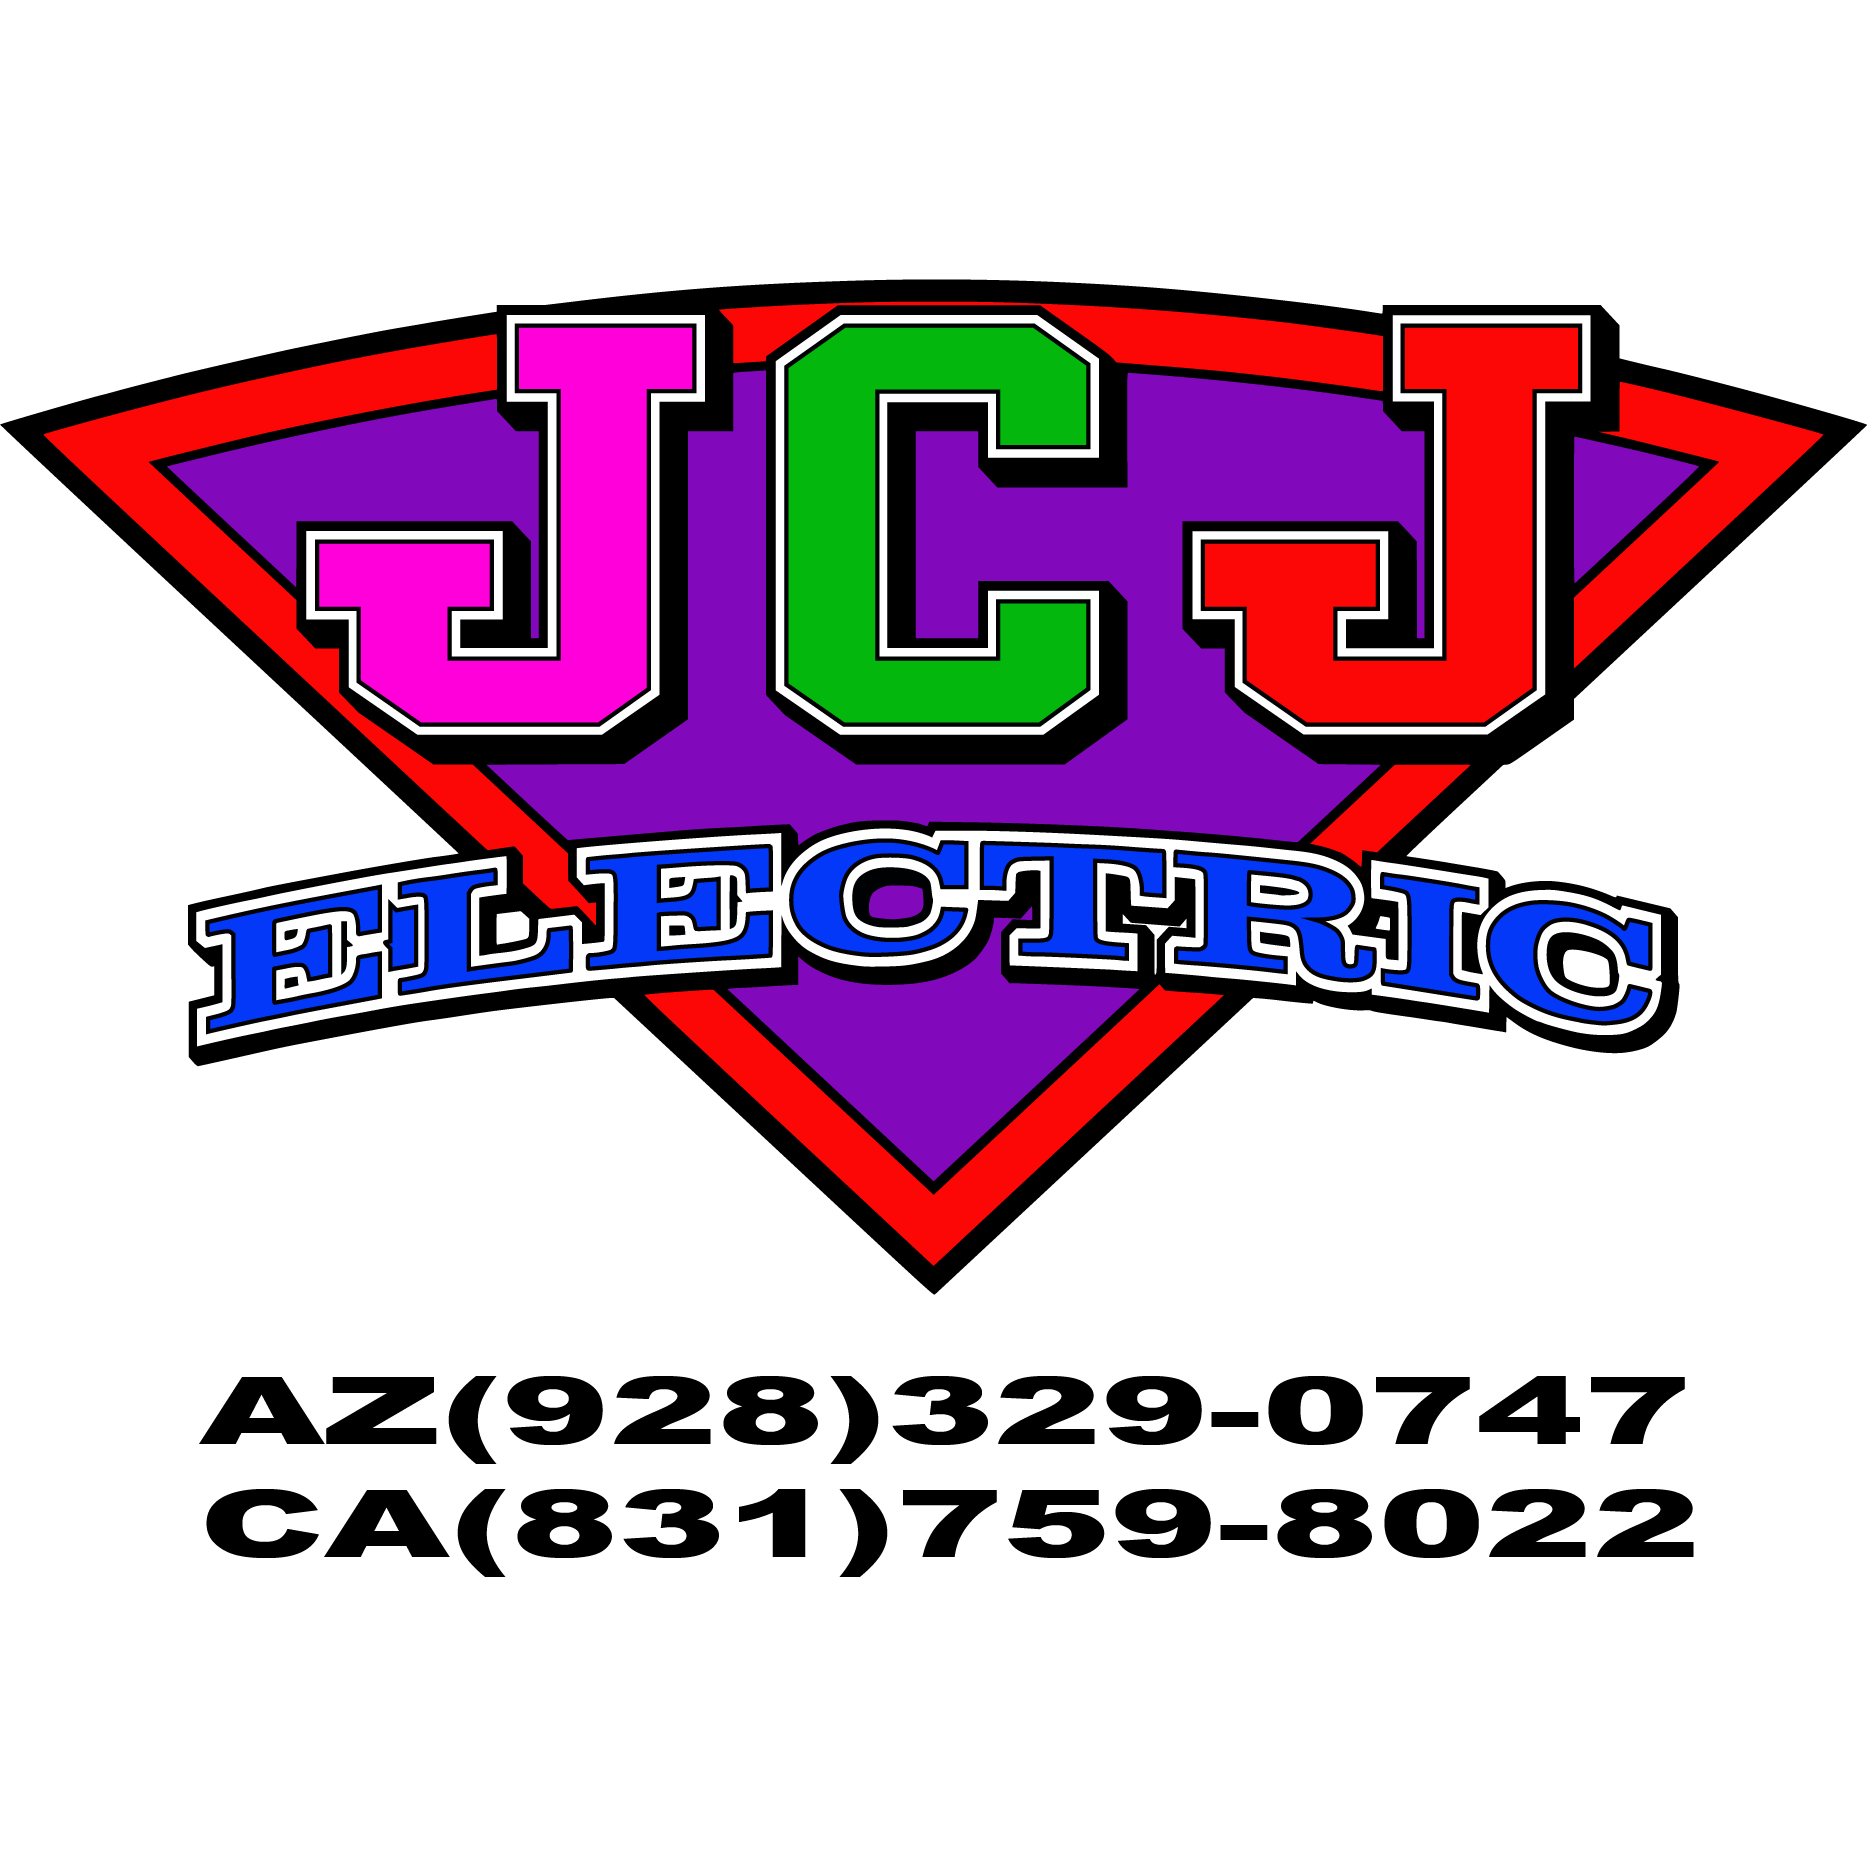 JCJ Electric Corp